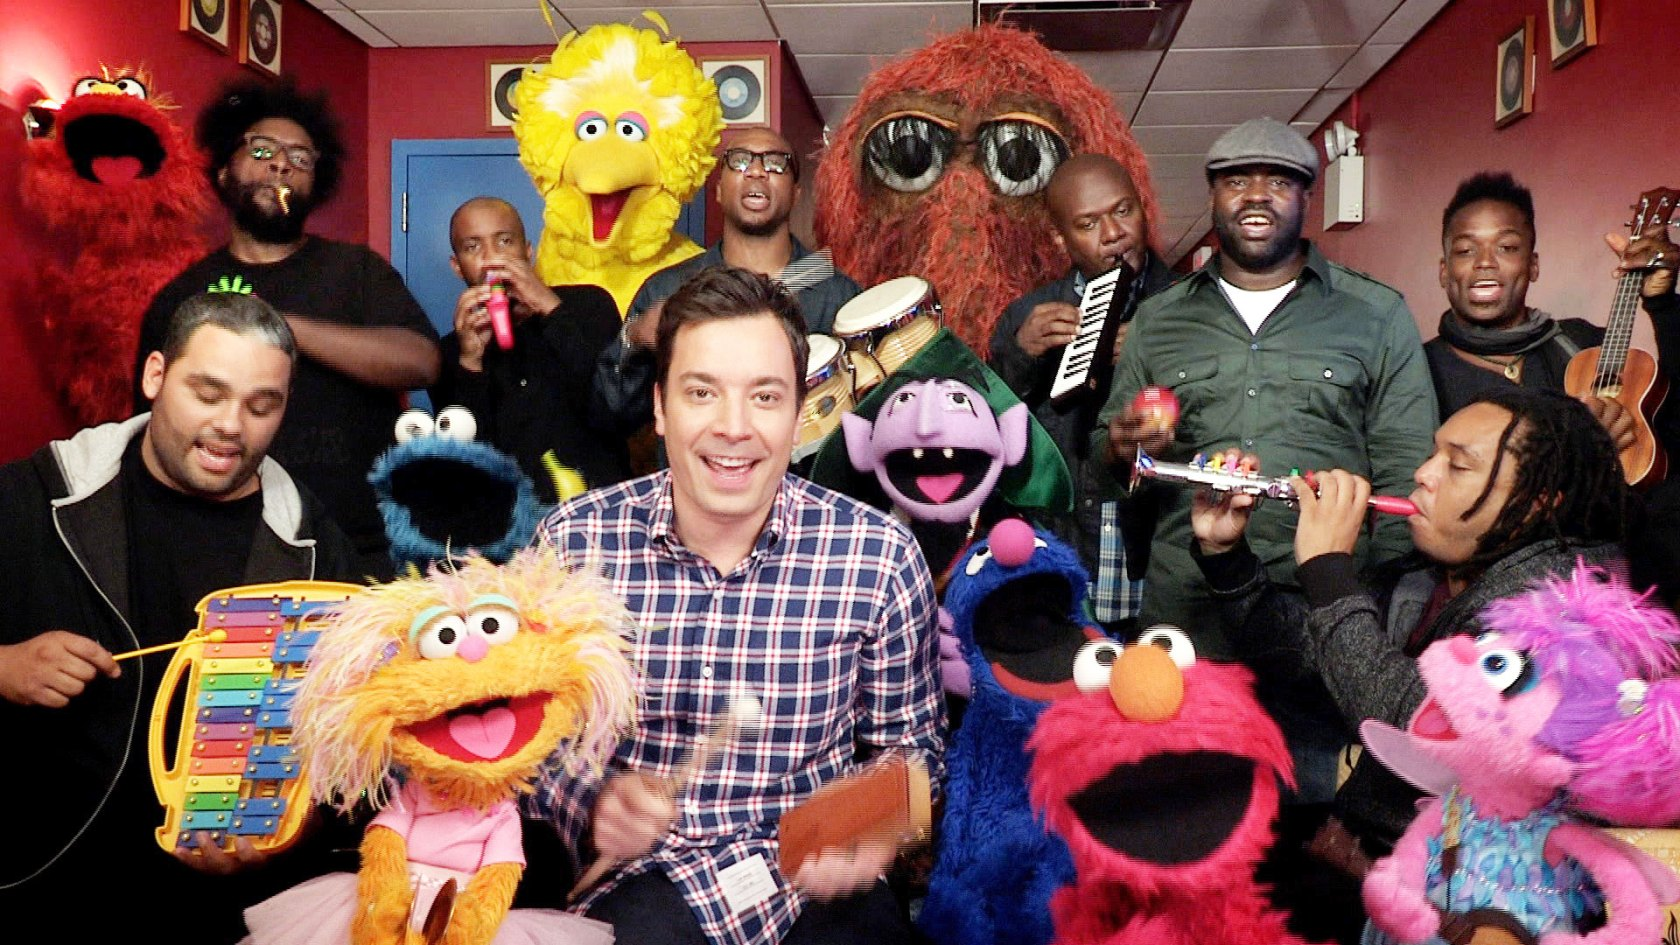 Jimmy Fallon & Sesame Street Bring Some Happiness to the Day